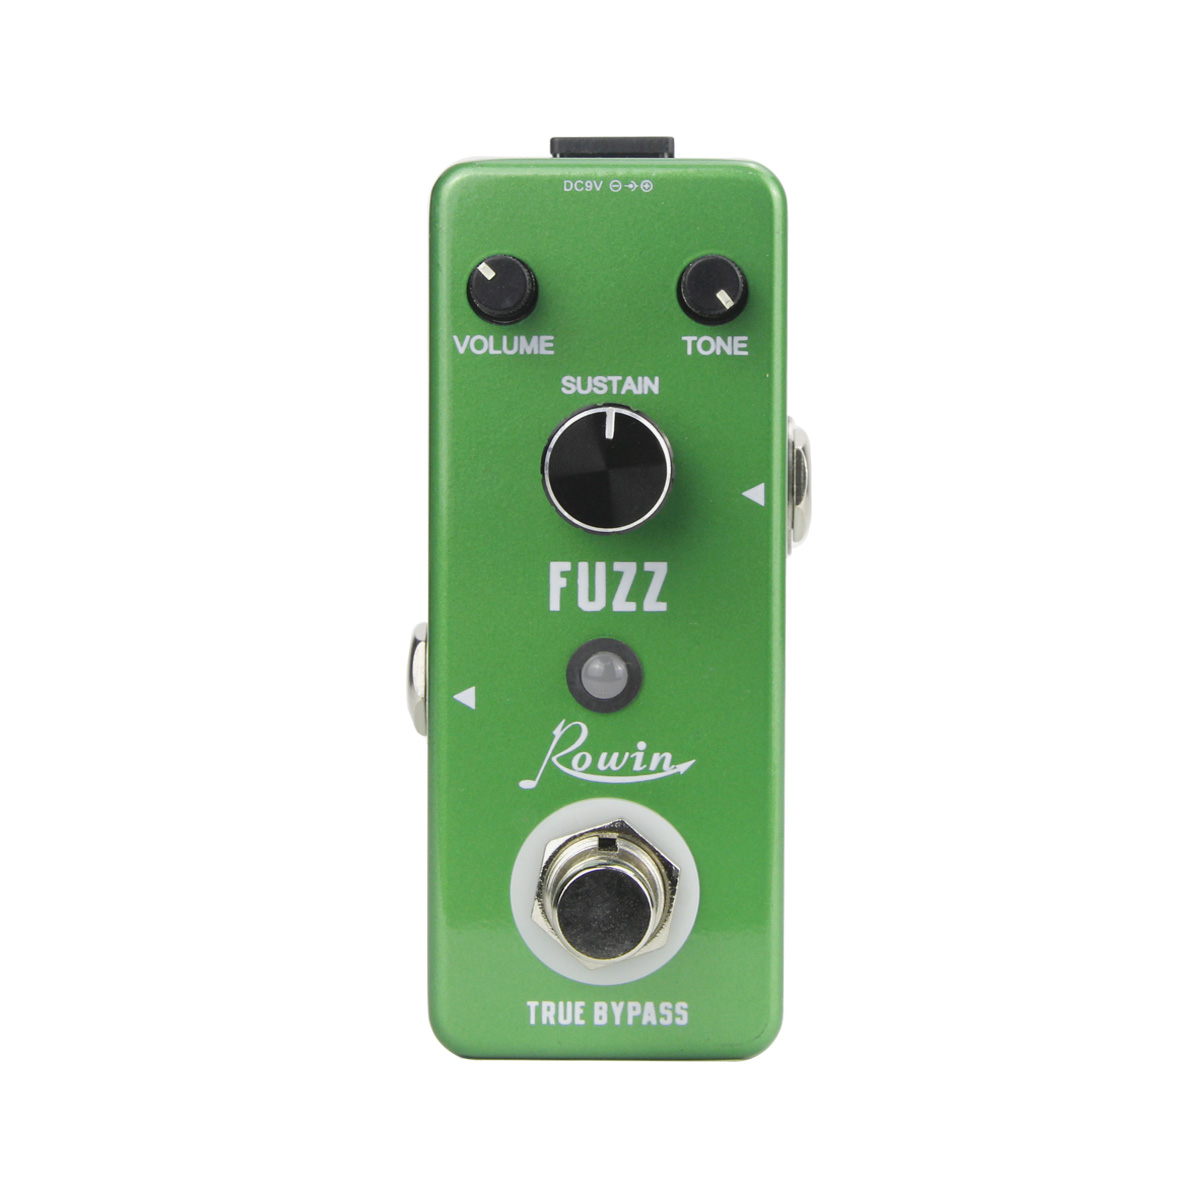 NEW Mini FUZZ Pedal Guitar Effect Aluminum Alloy Shell True Bypass Guitar Parts image